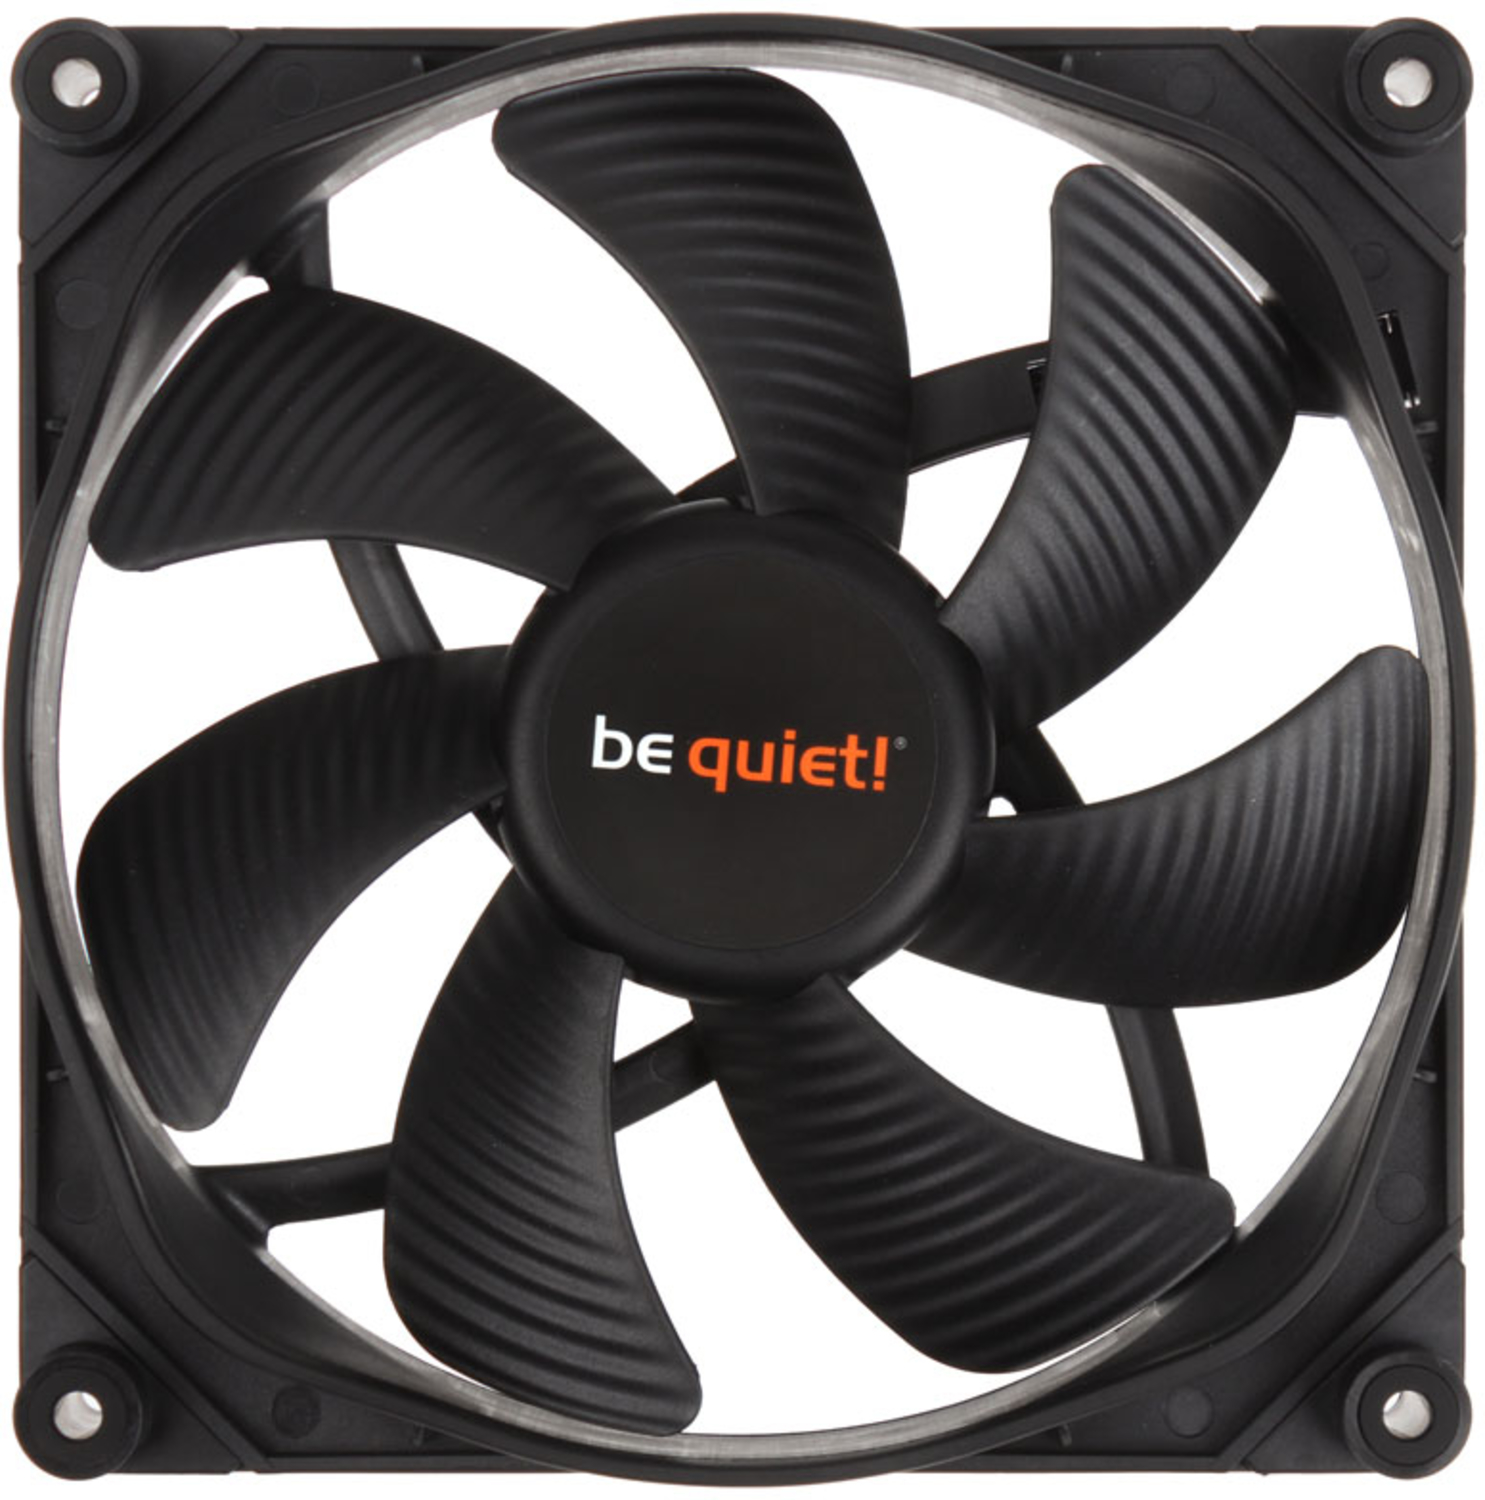 Ventoinha be quiet! Silent Wings 3 High Speed 140mm